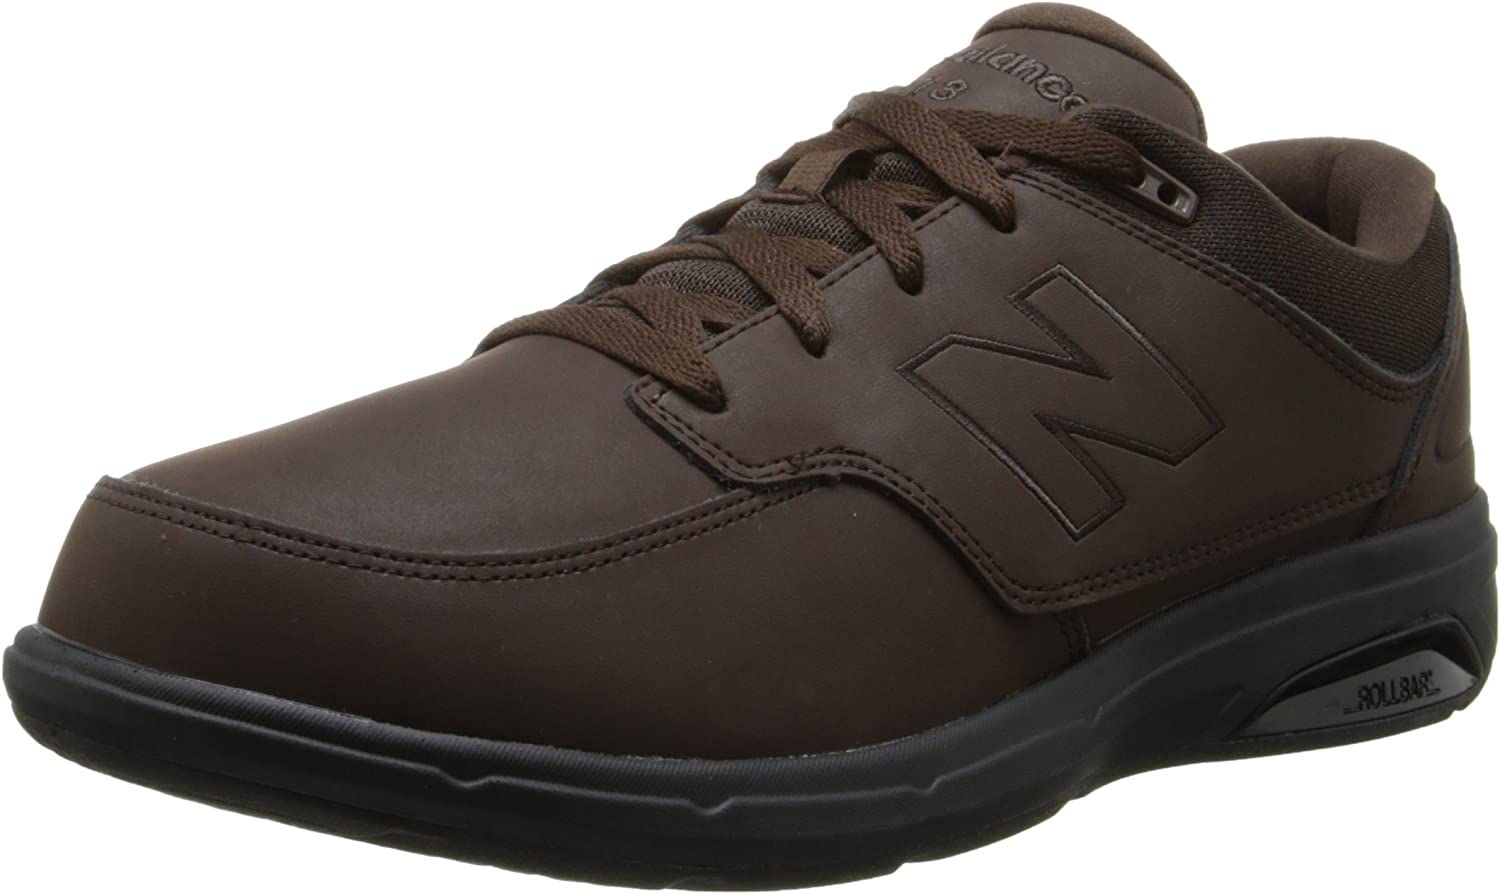 New Balance Men's MW813 Walking schuhe, braun, 14 4E US